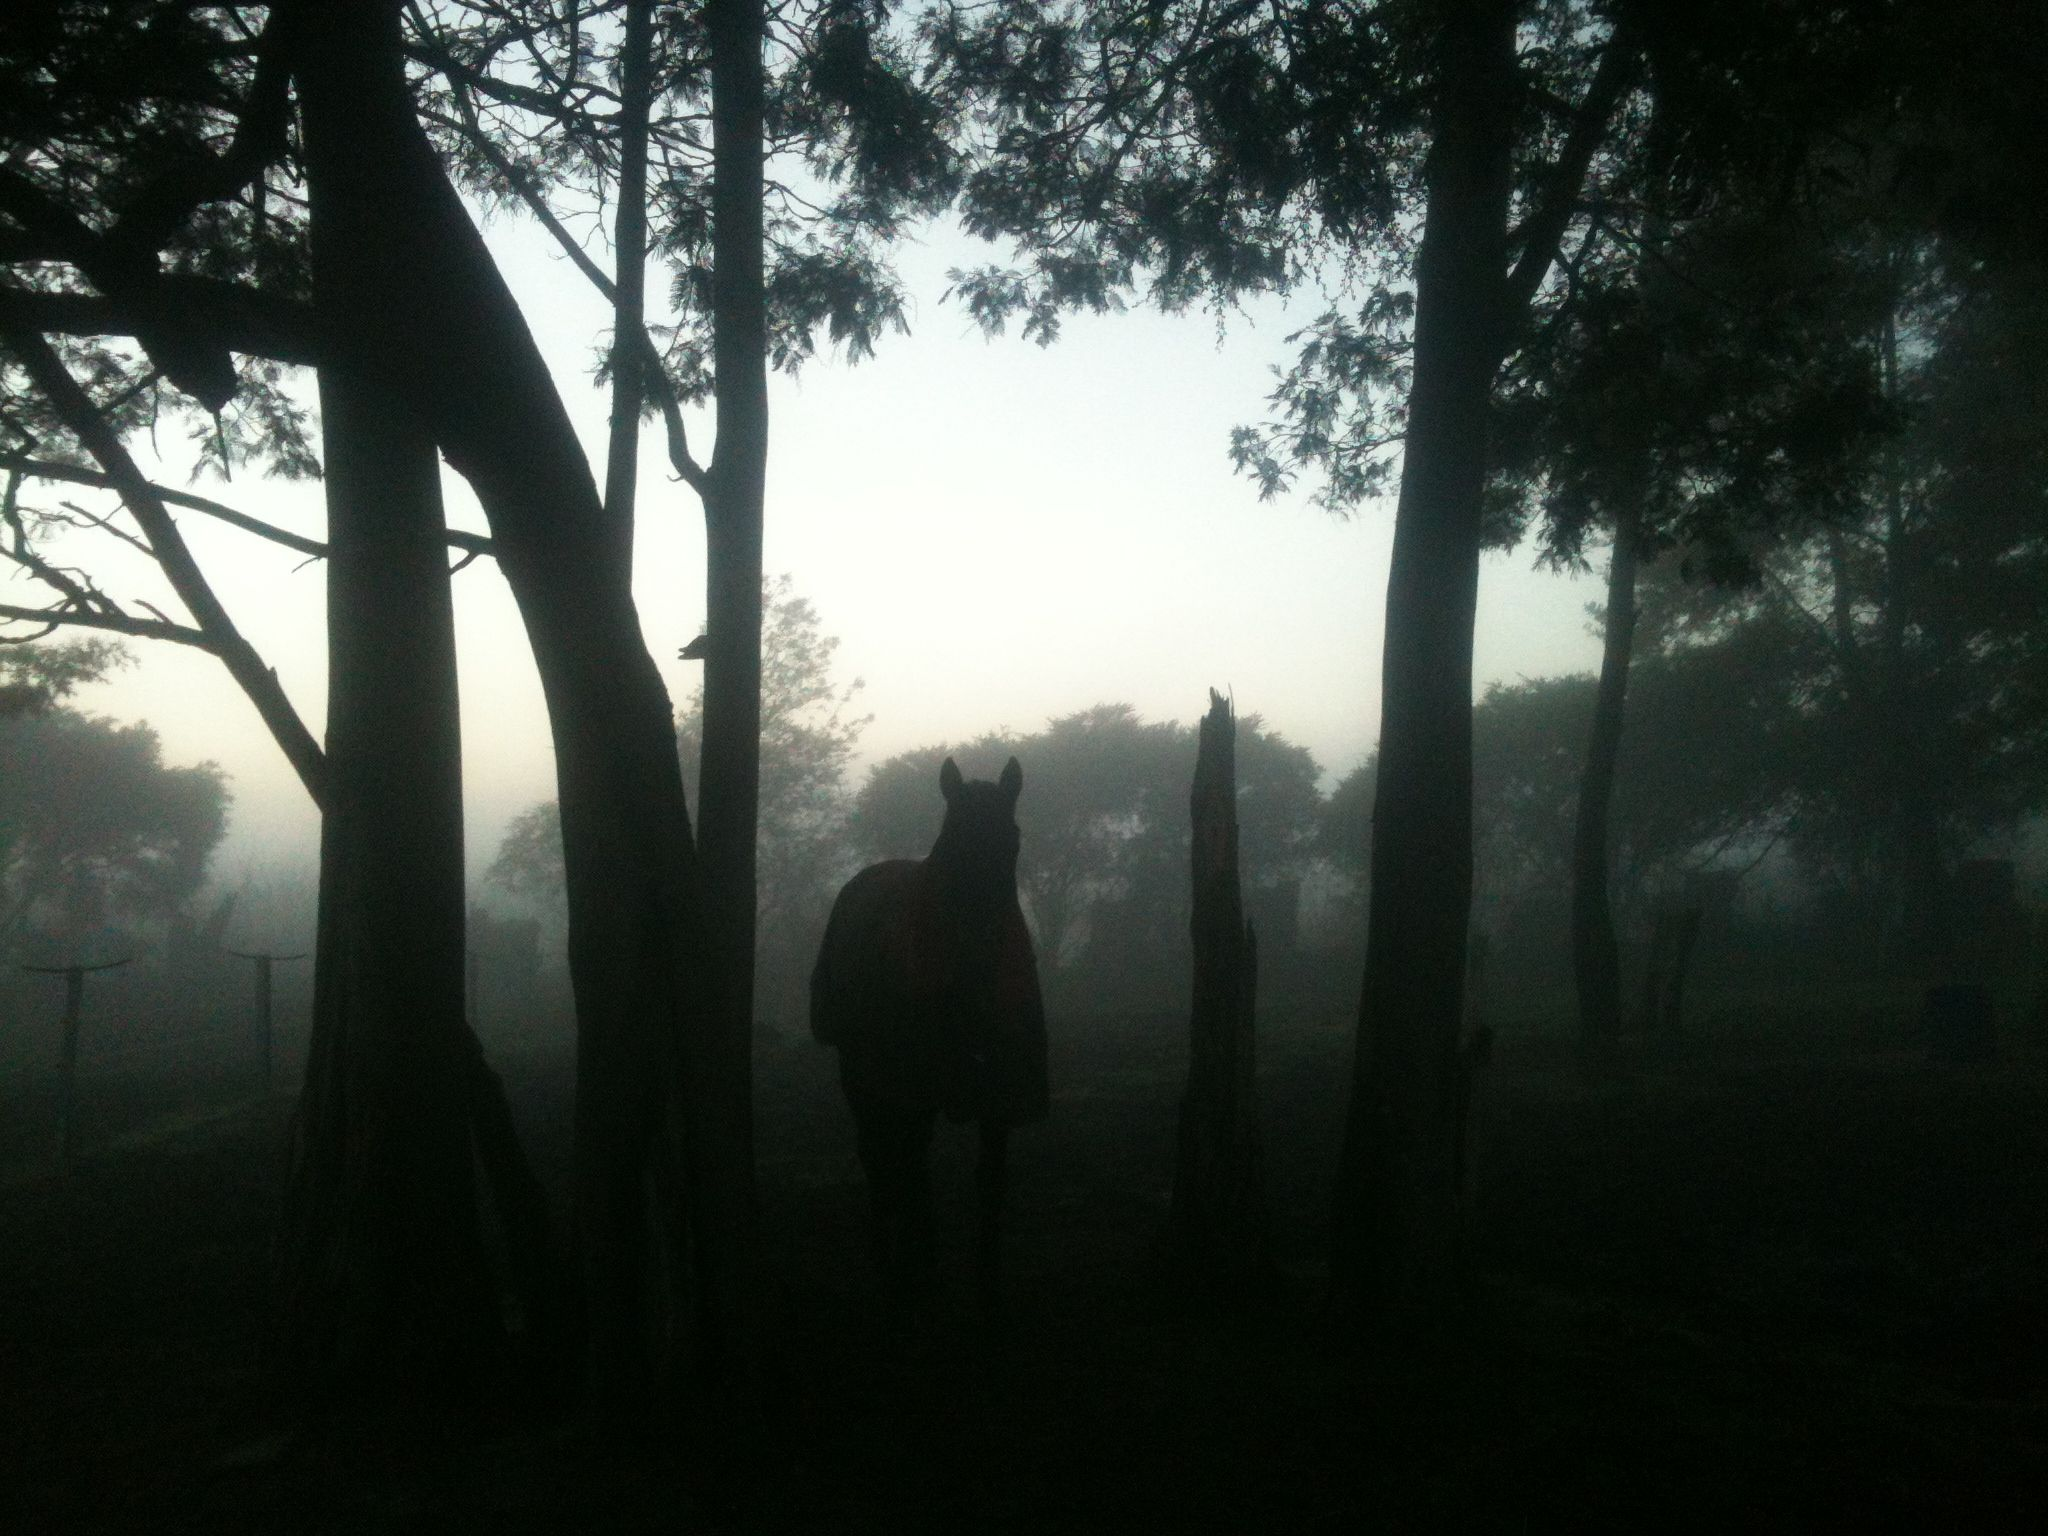 The race horses awaken through the fog of the early, cold morning.